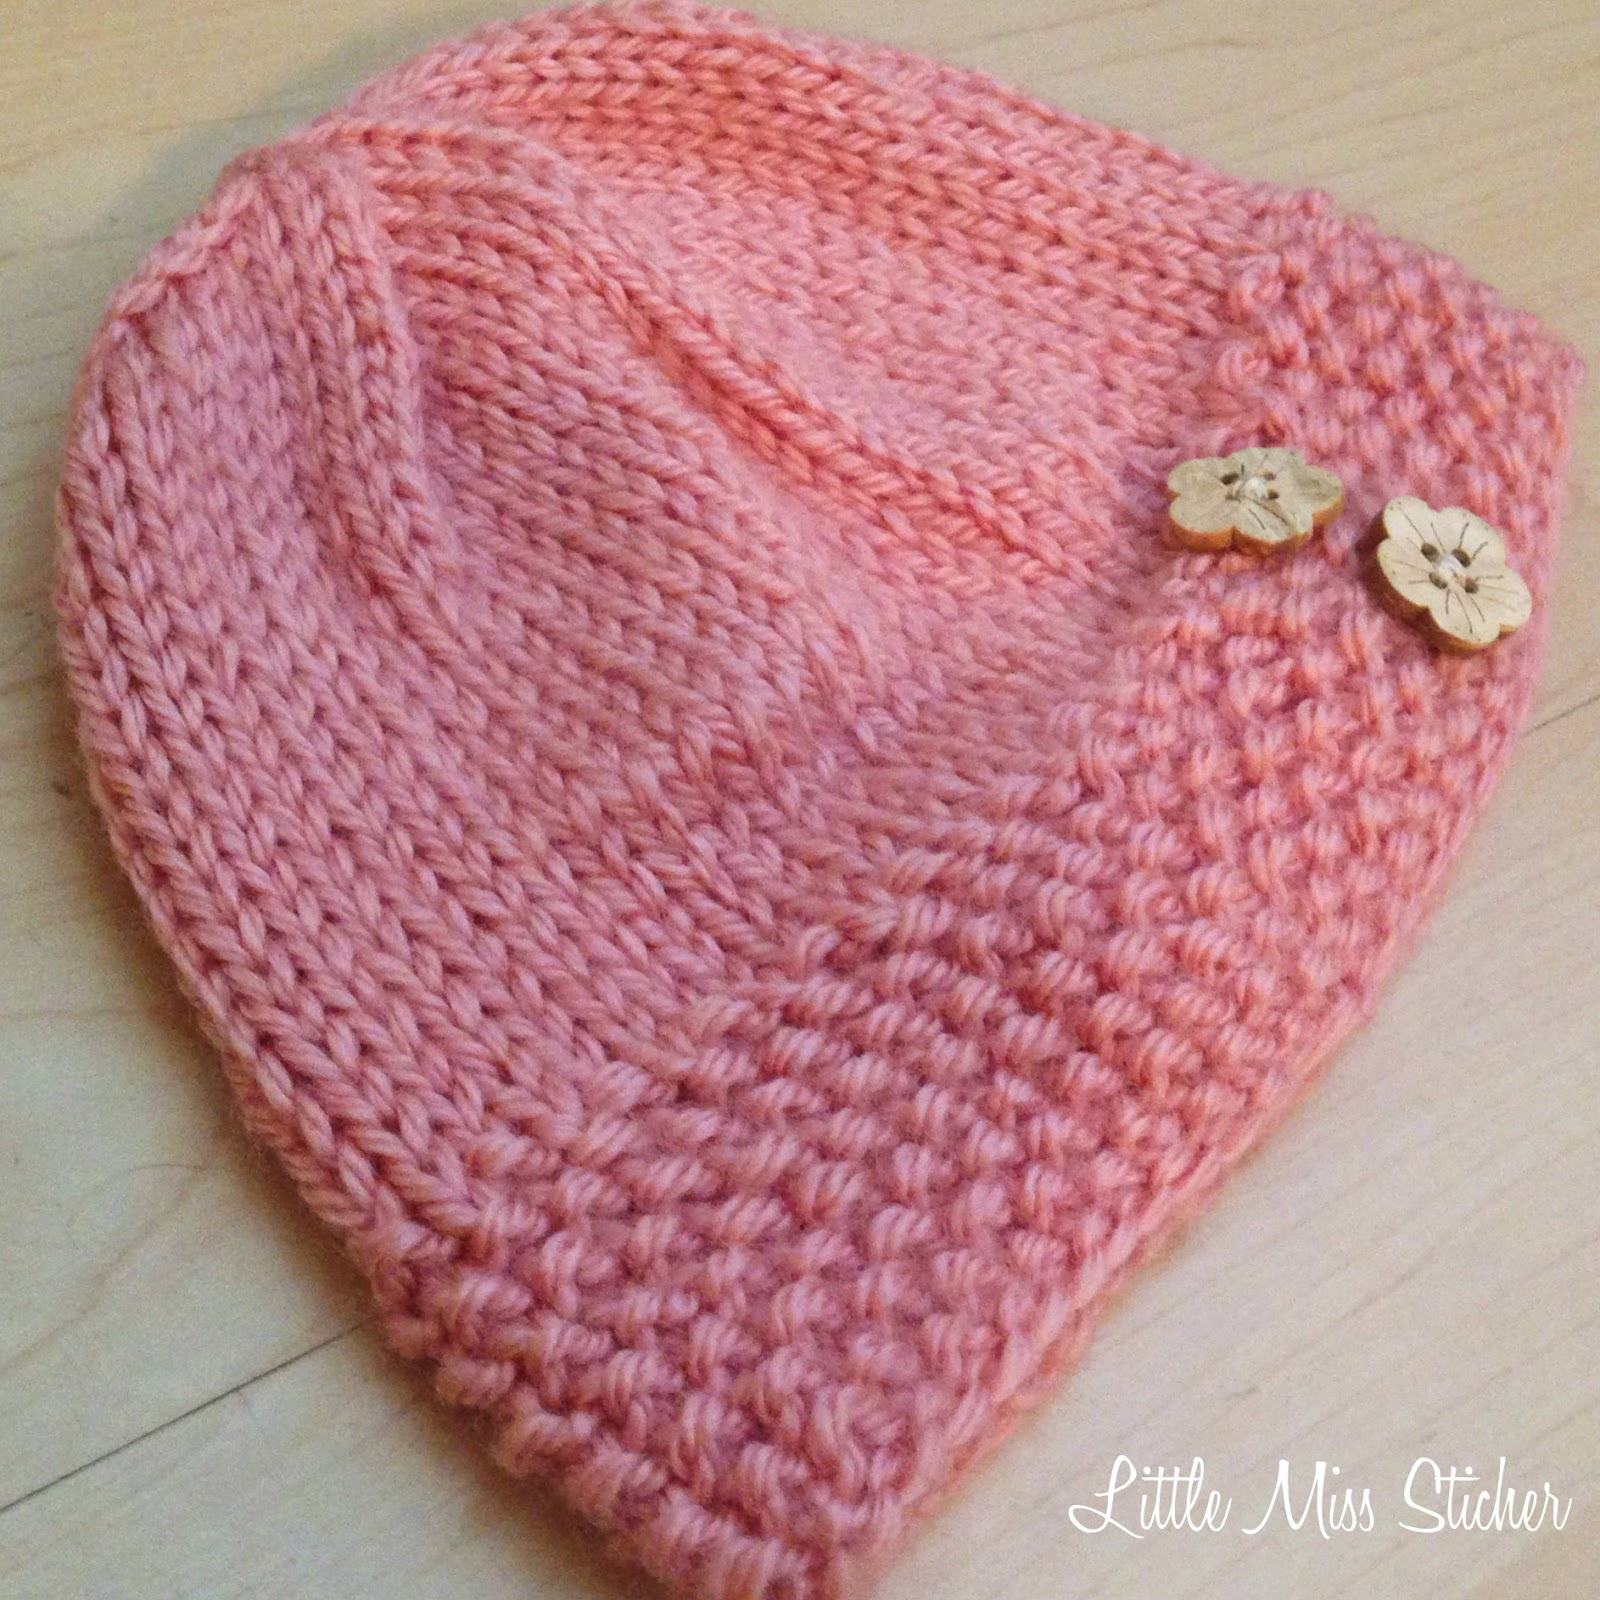 http://little-miss-stitcher.blogspot.com/2014/09/bitty-beanie-free-knit-pattern.html